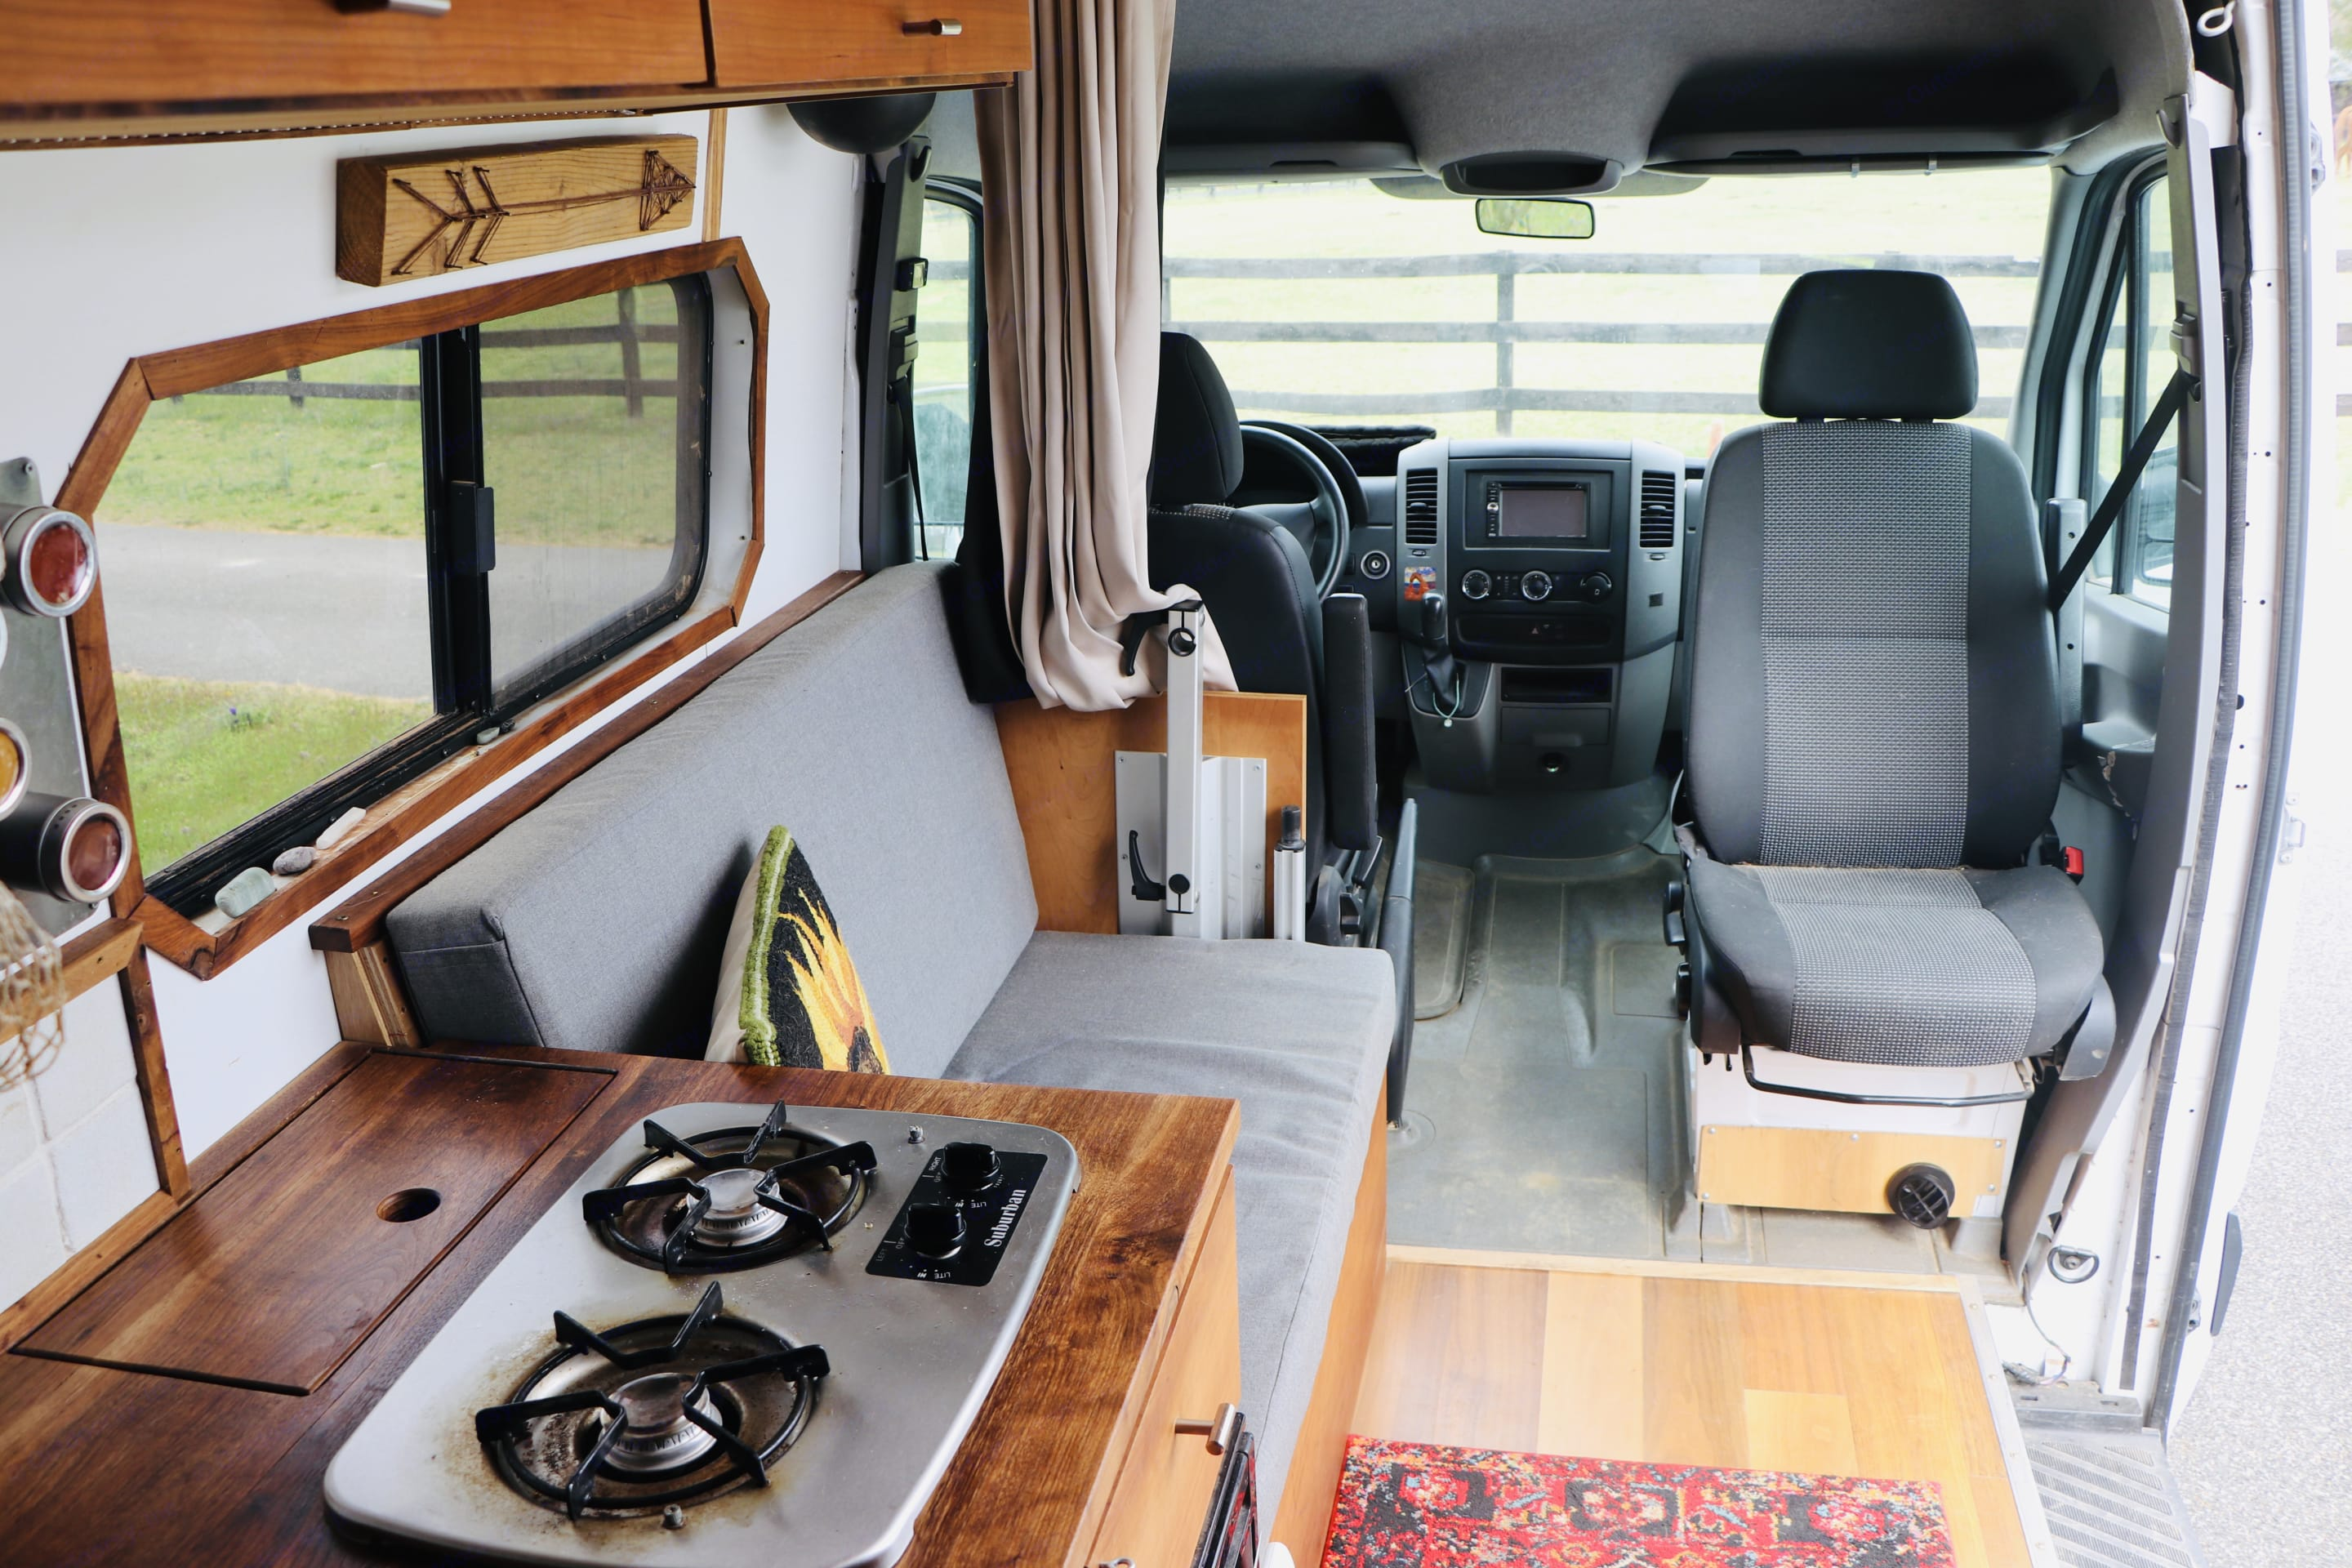 View from the bed, 2 burner propane stovetop, passenger swivel seat. Mercedes-Benz Sprinter 2013